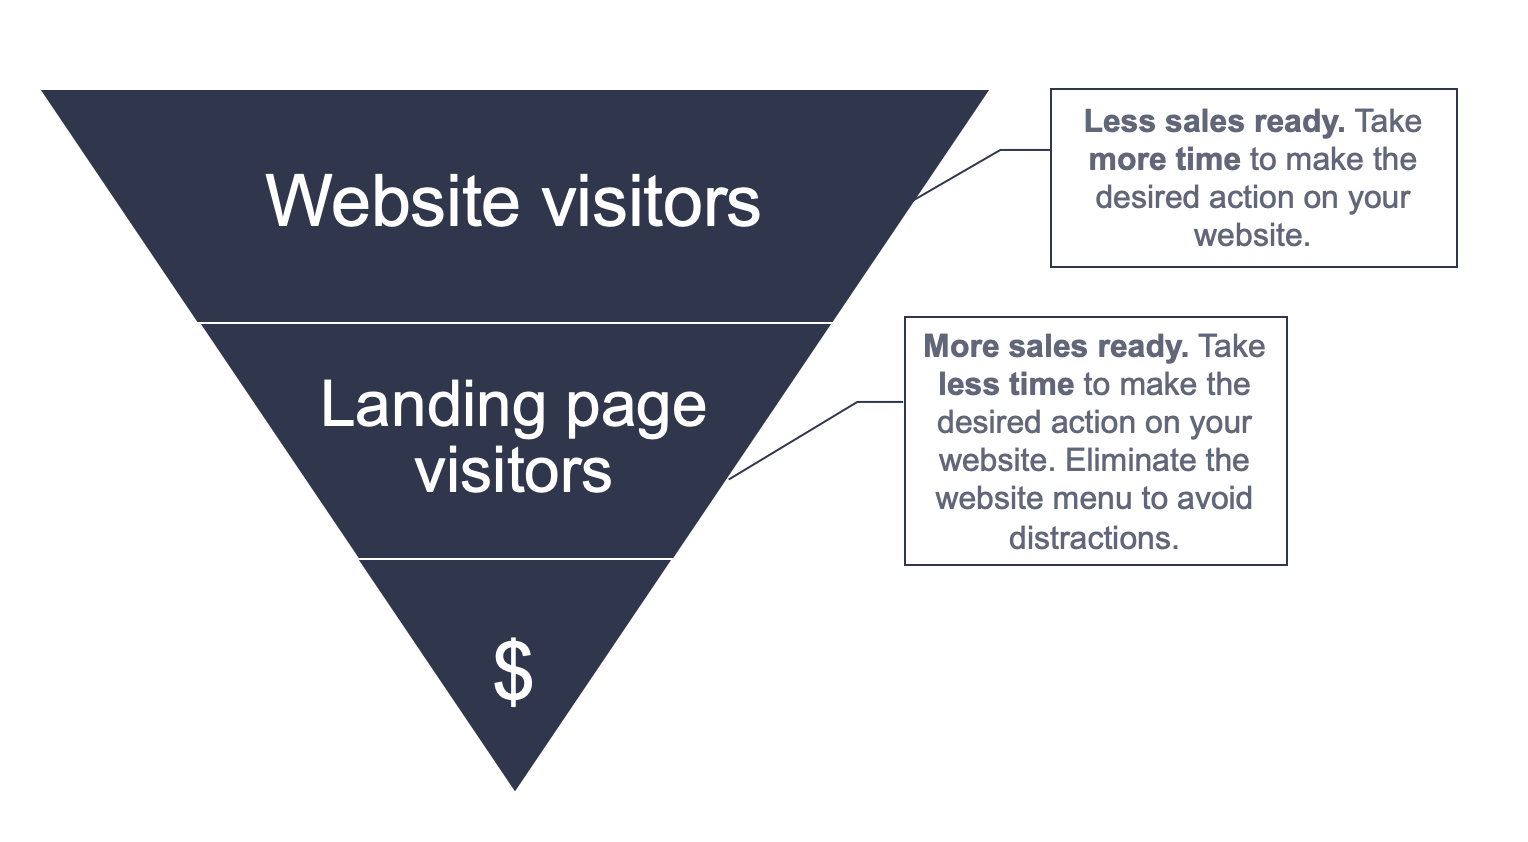 Difference in the intent between the website visitors and landing page visitors